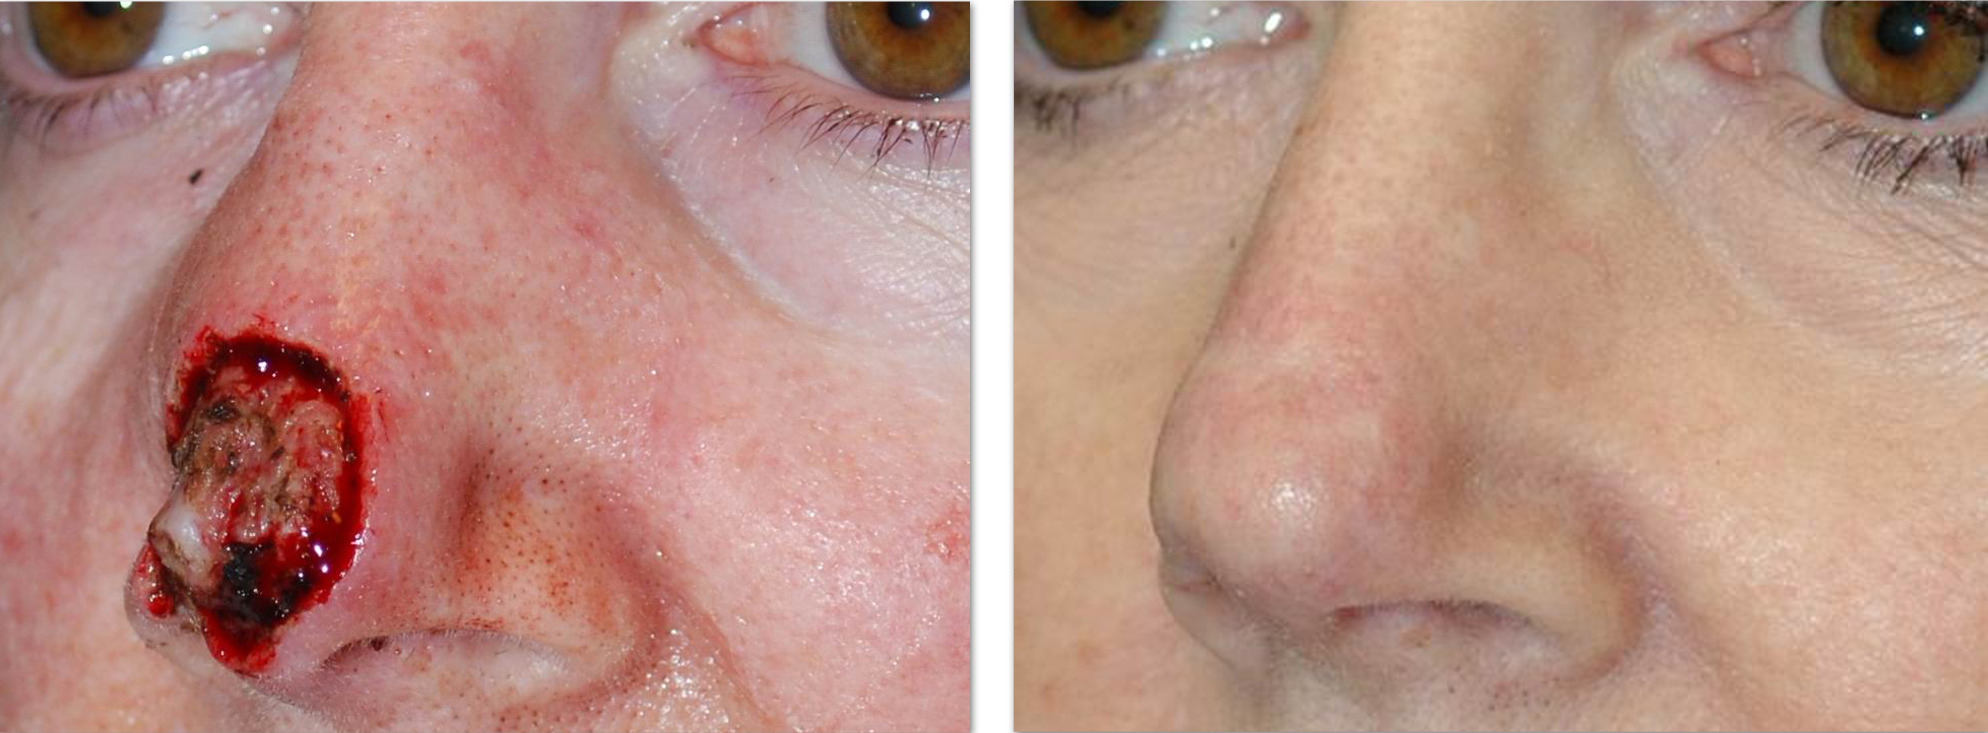 Nasal Reconstruction For Skin Cancer Patients In Seattle Sattler Plastic Surgery Seattle